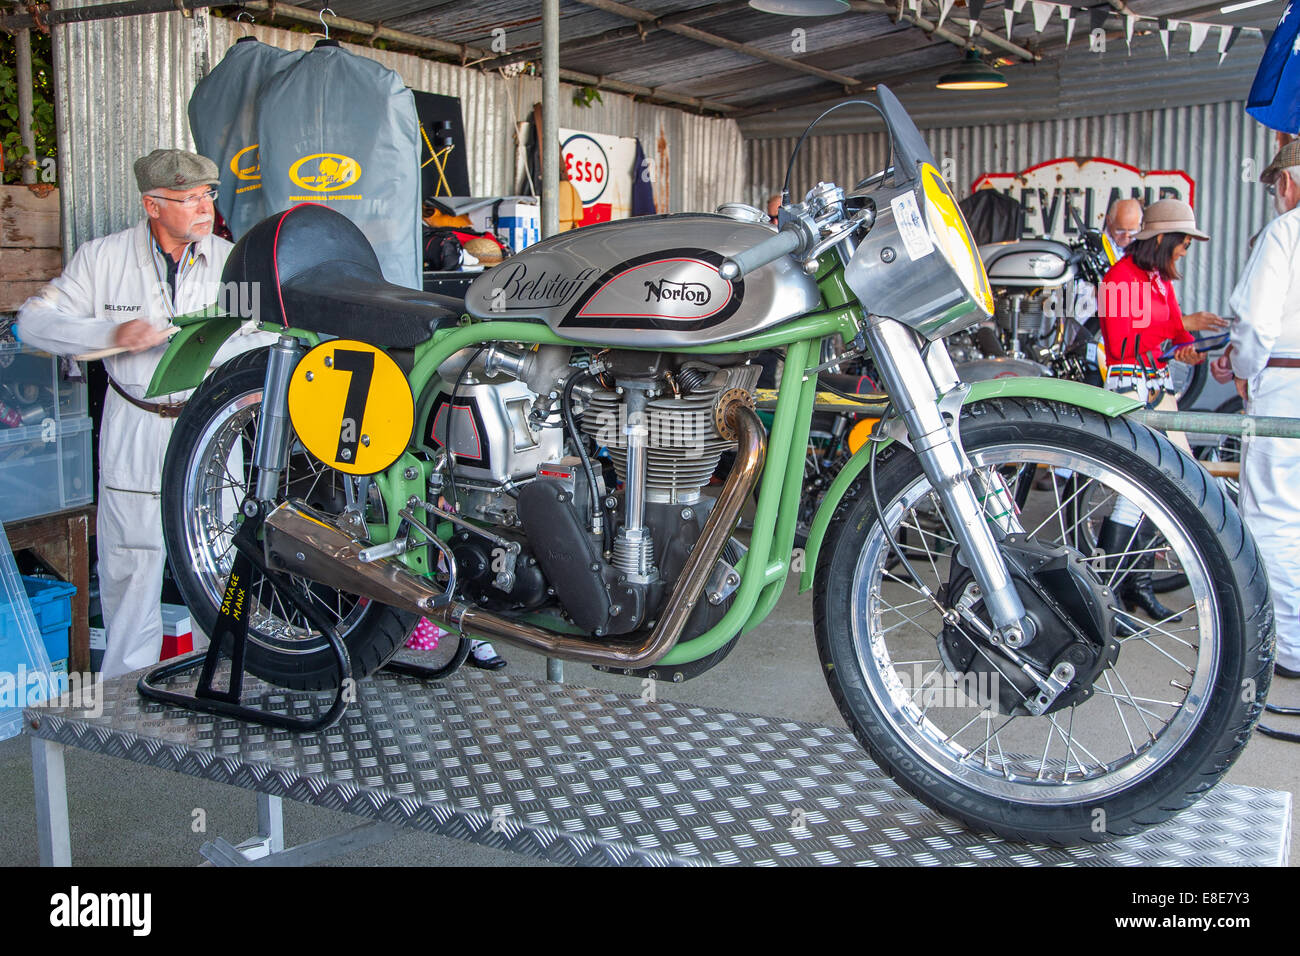 1952 Norton Manx motorbike at the Goodwood Revival 2014, West Sussex, UK - Stock Image